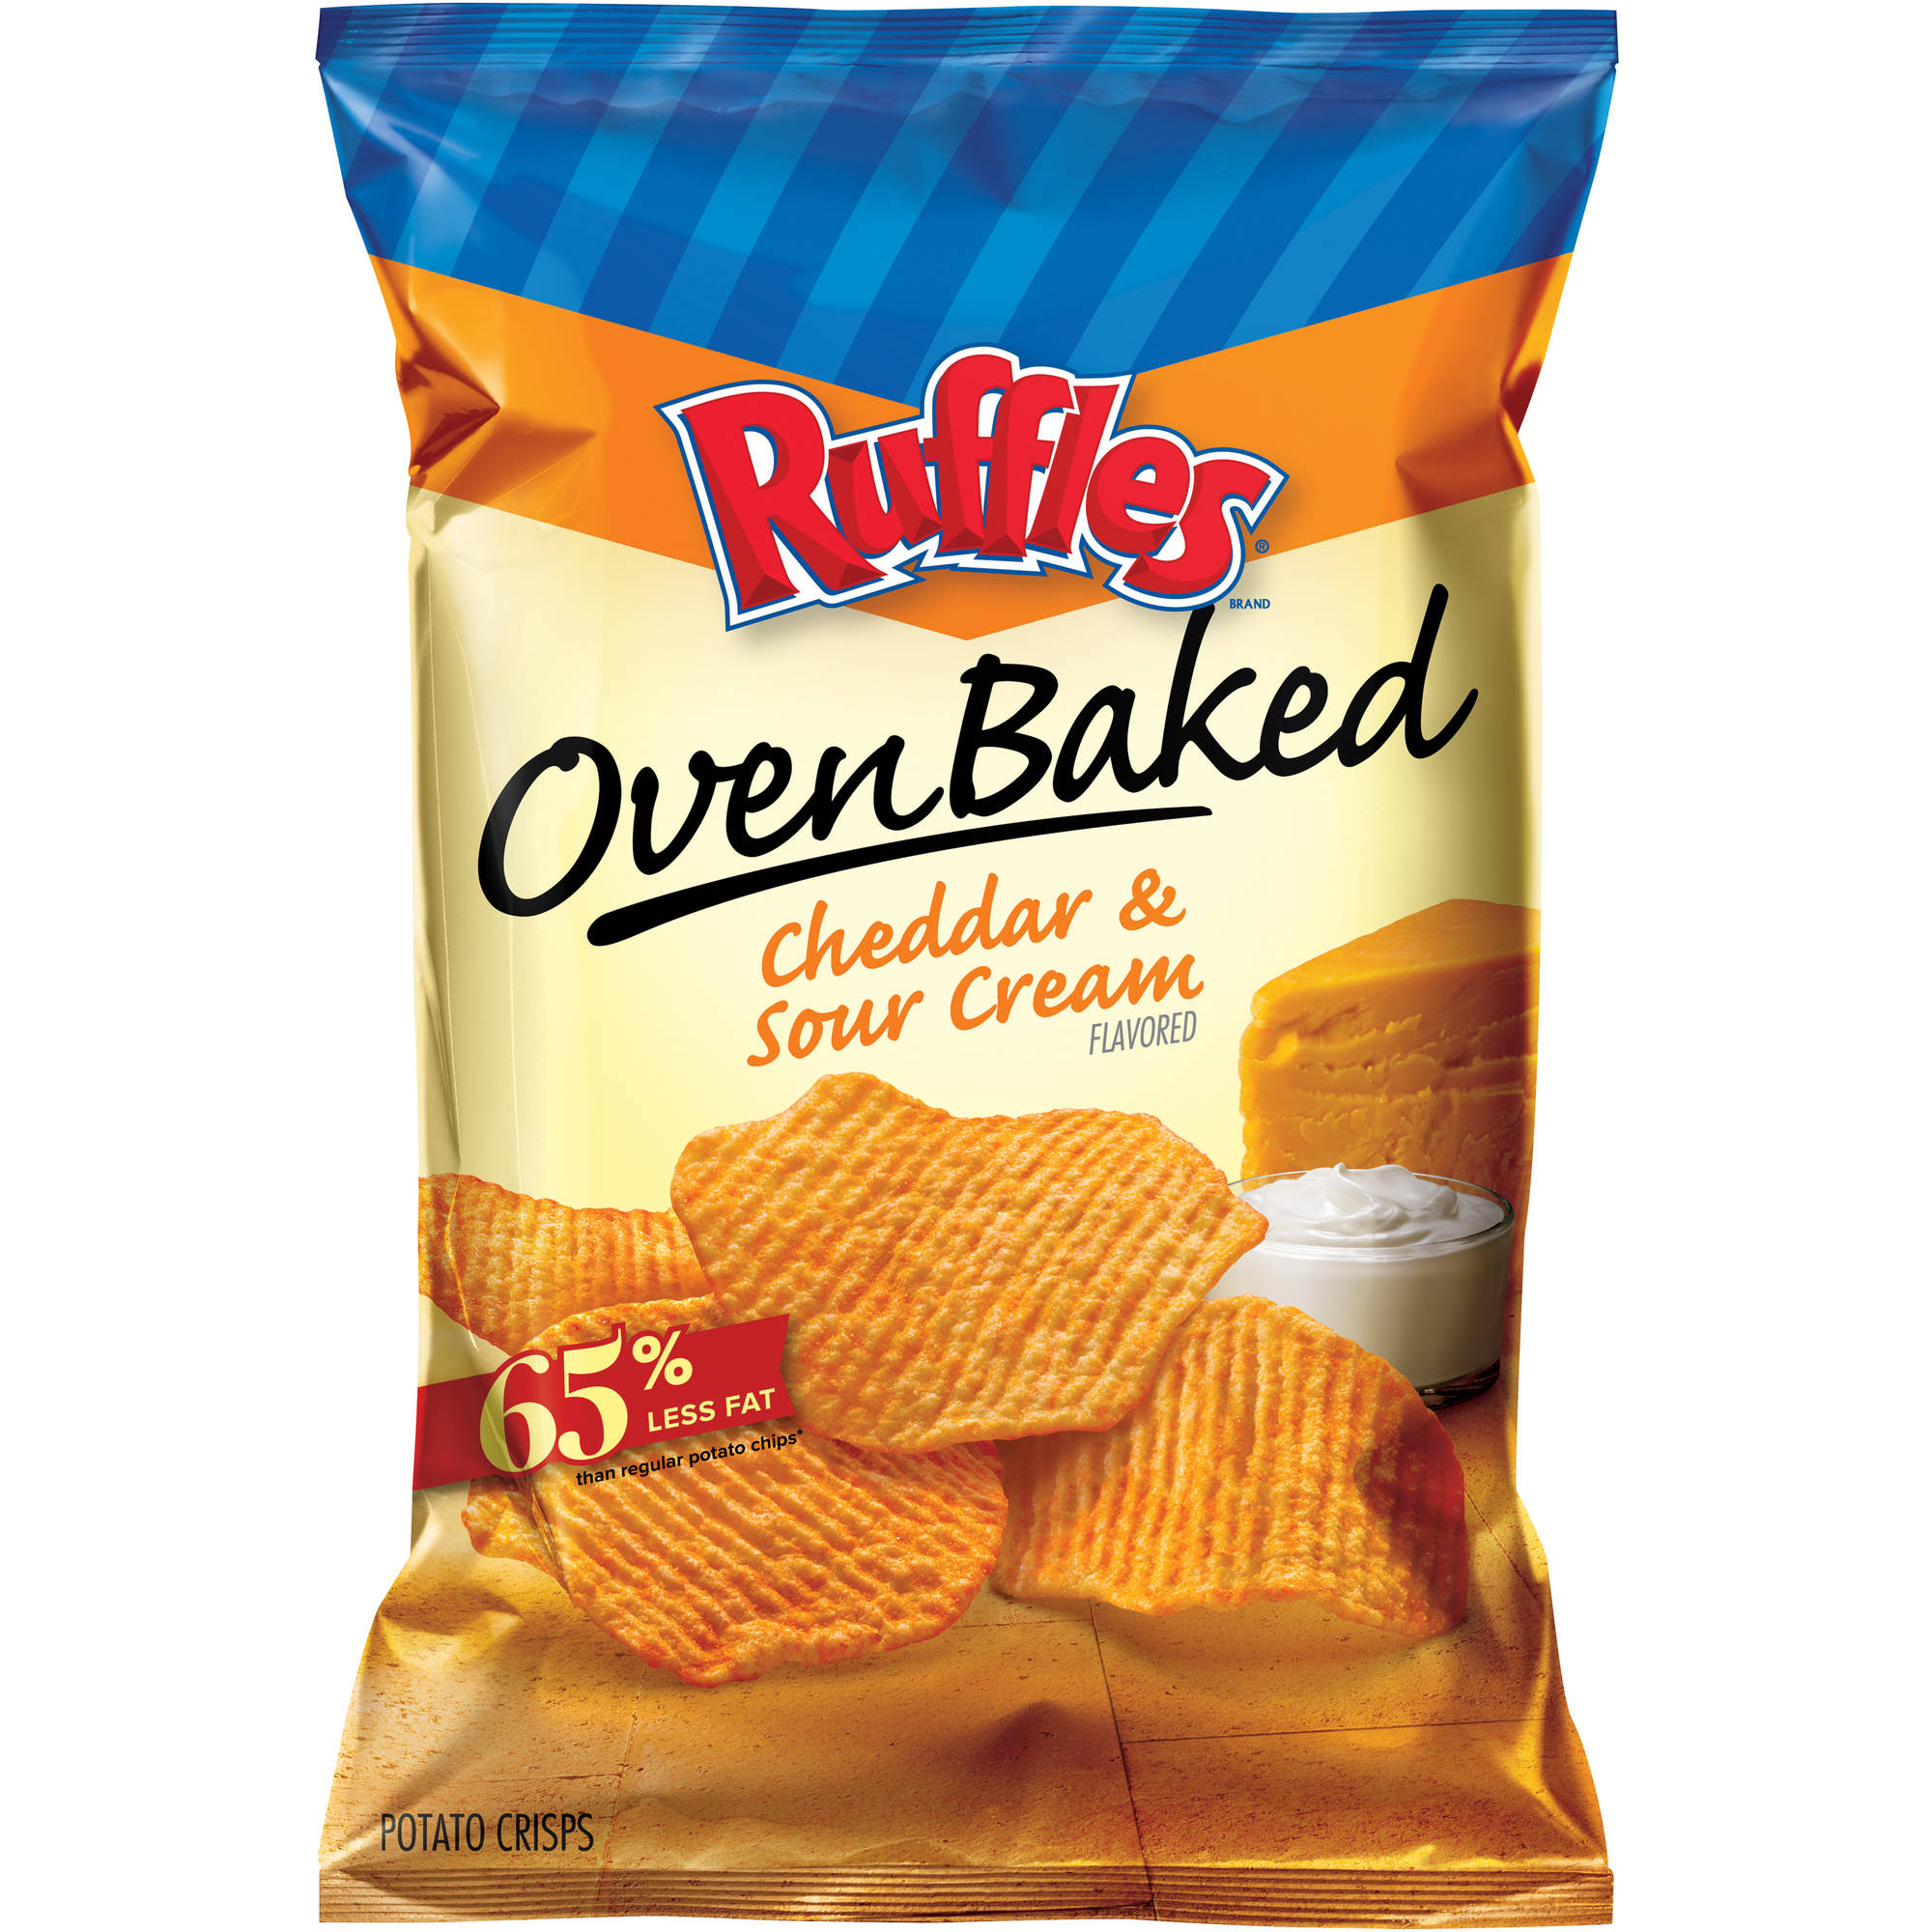 Ruffles Oven Baked Cheddar & Sour Cream Flavored Potato Crisps, 6.25 oz.